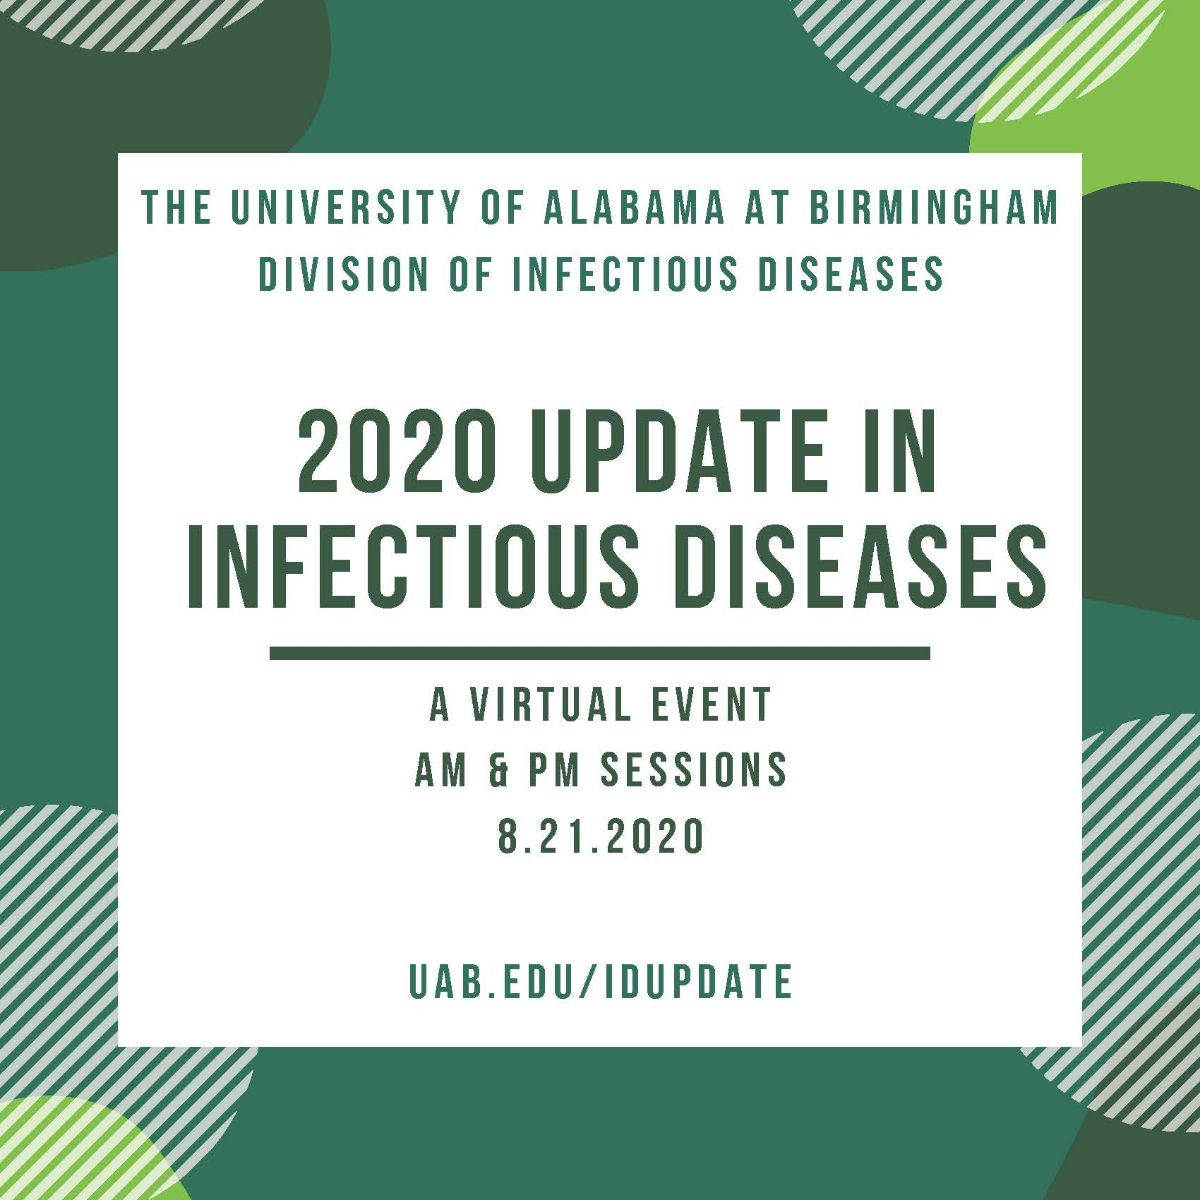 Registration now open for the 2020 Update in Infectious Diseases! fal.cn/395gy